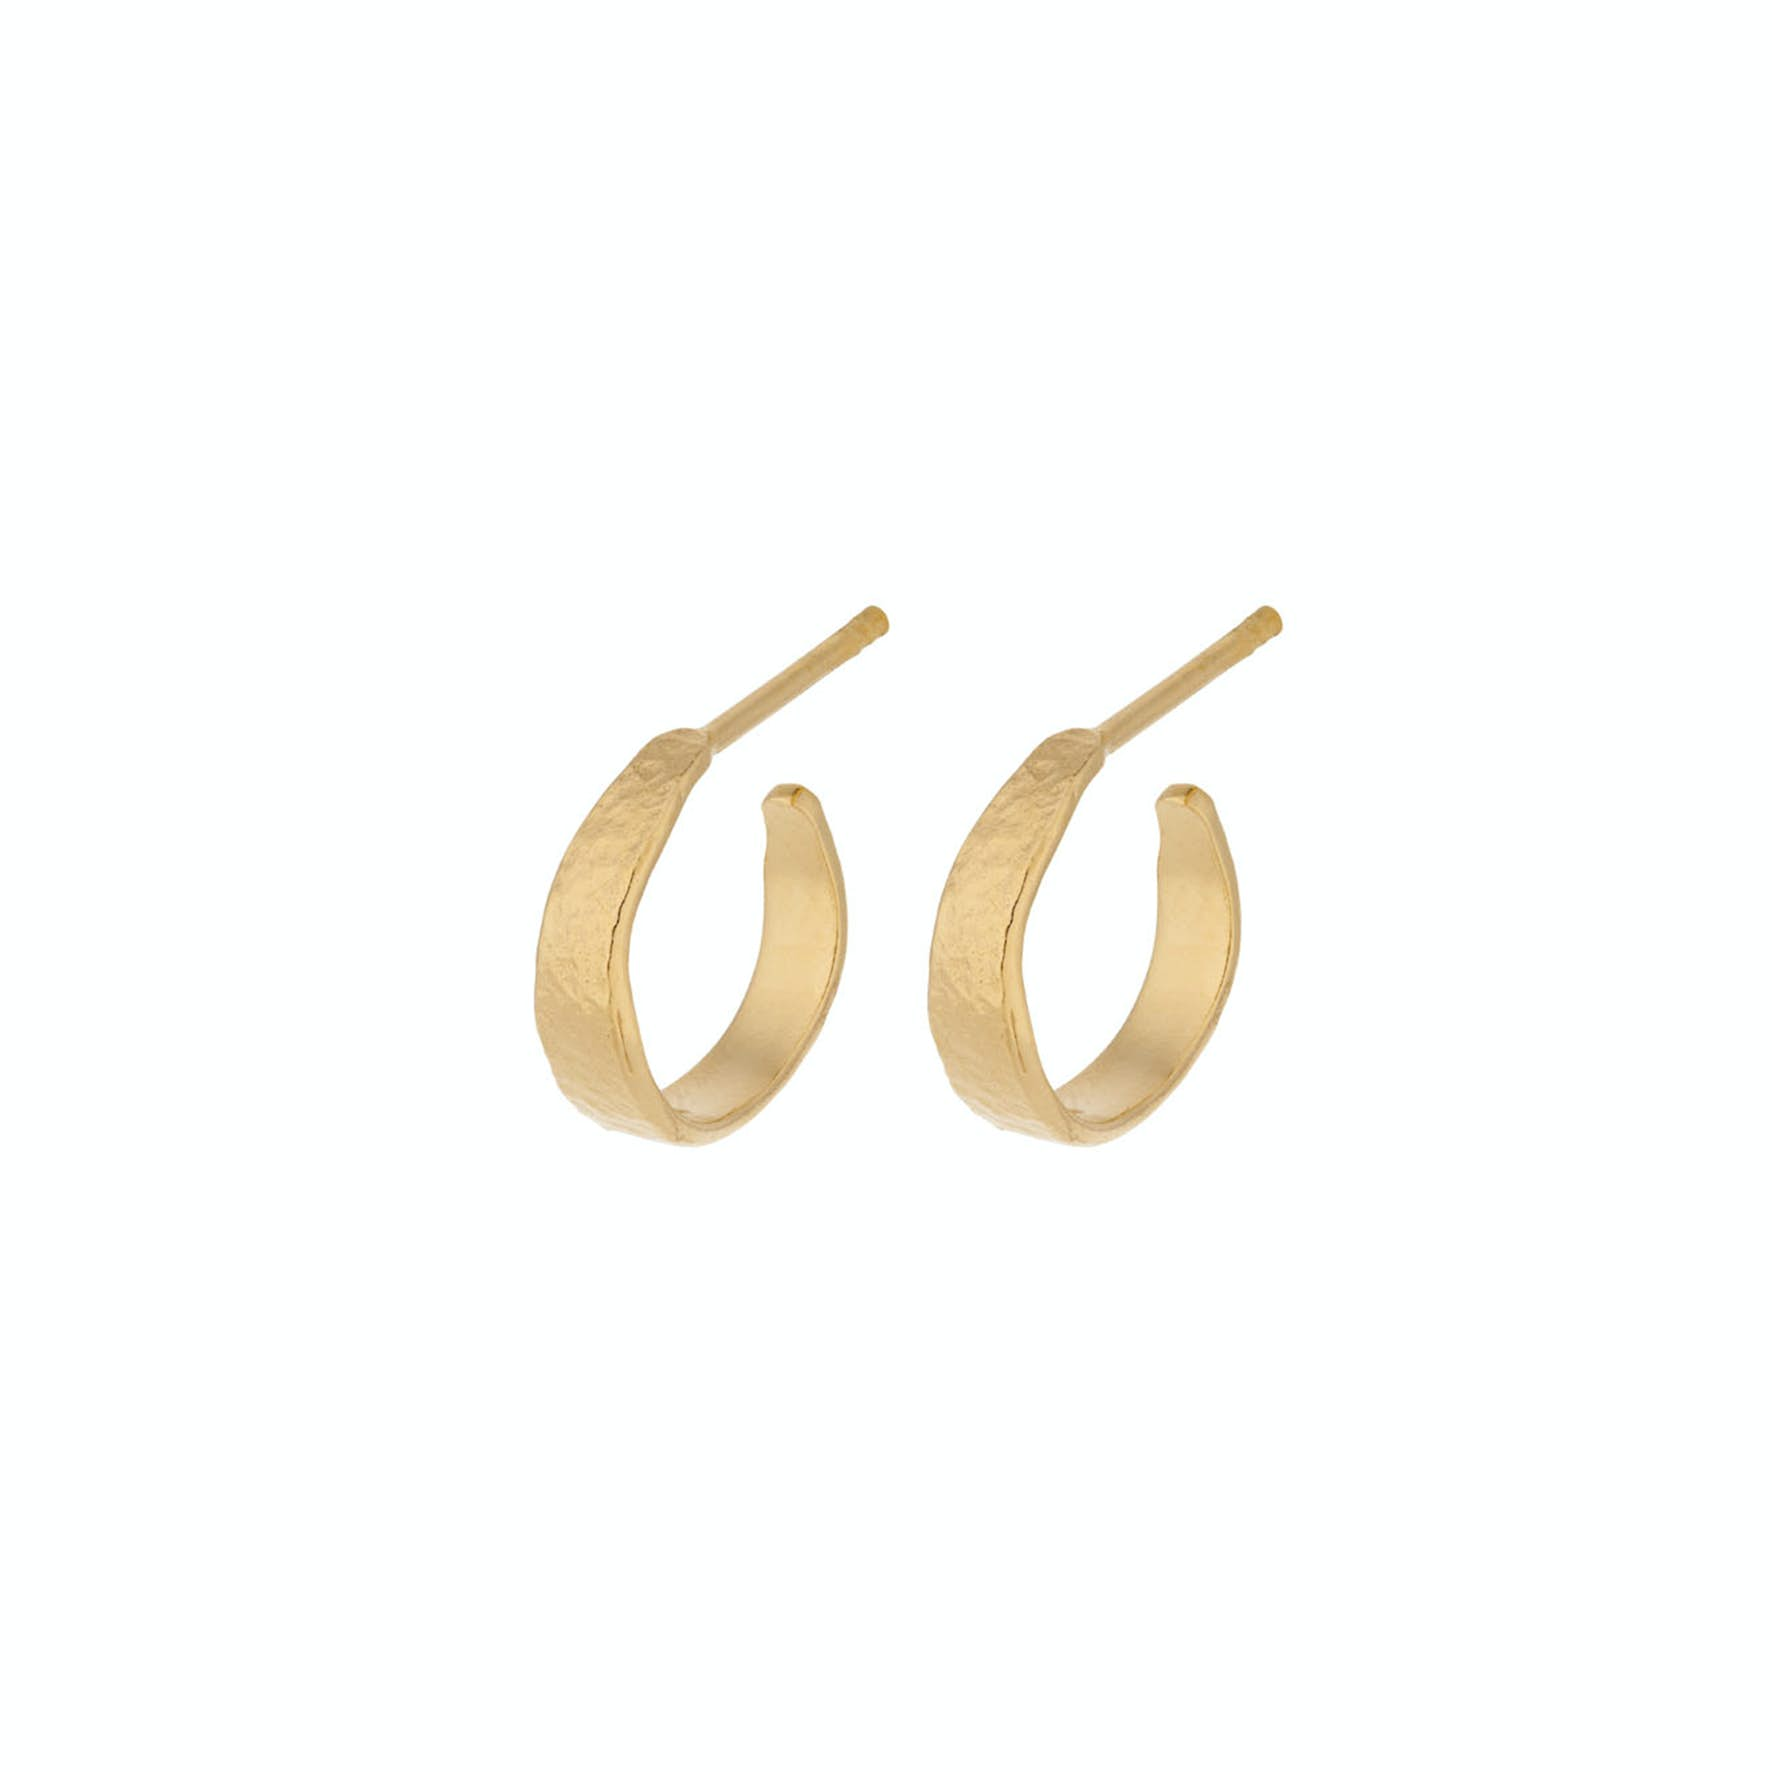 Moonscape Hoops Mini from Pernille Corydon in Goldplated-Silver Sterling 925